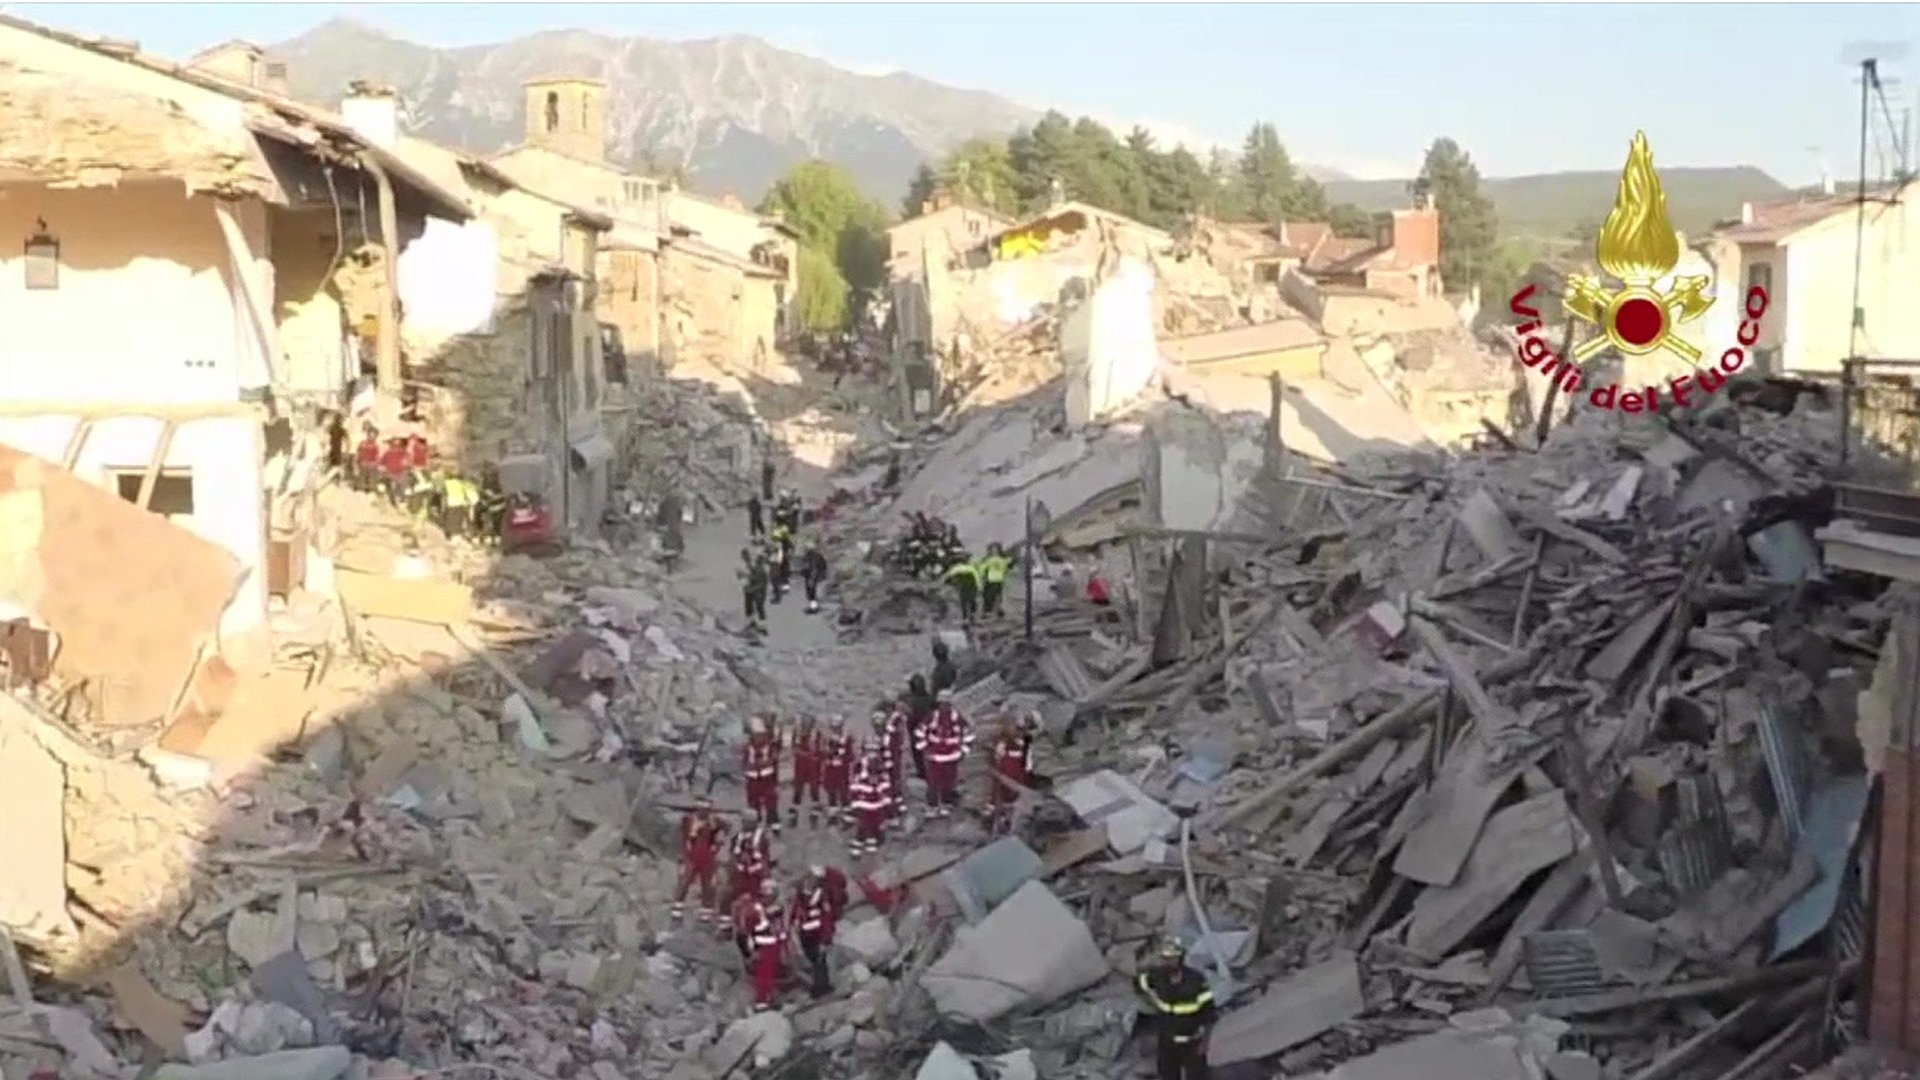 'Nowhere in Amatrice safe to live in' after Italy quake